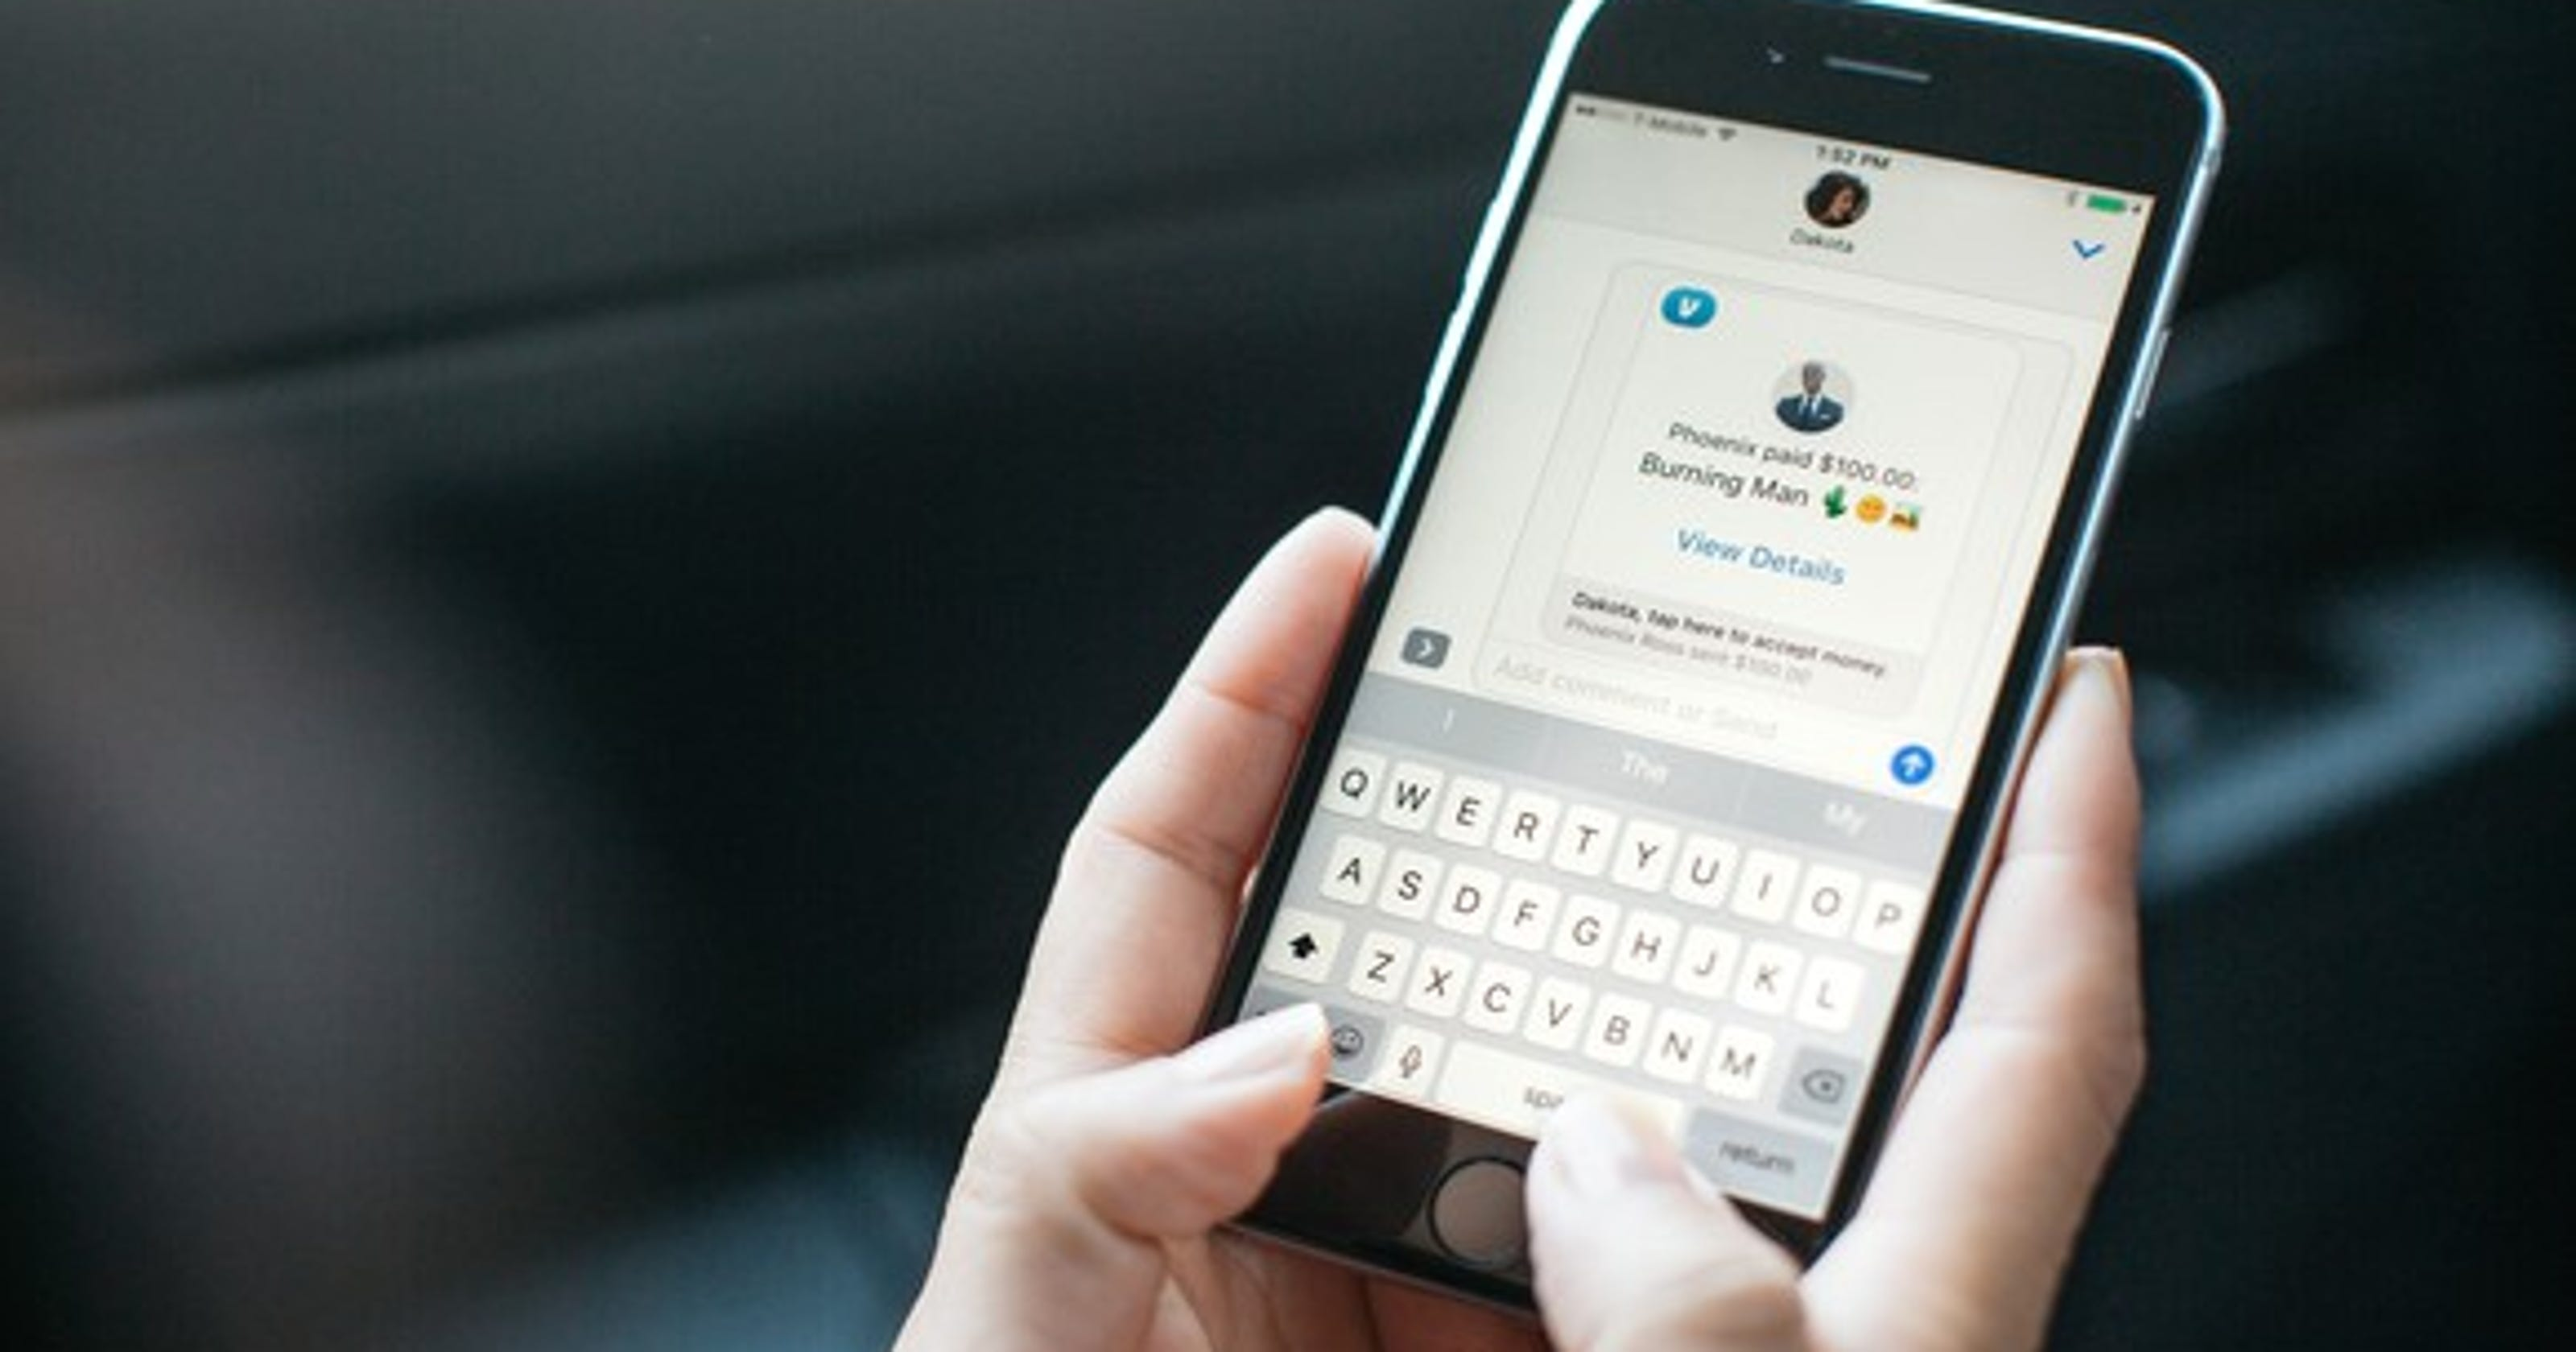 Want to avoid being financial knucklehead on Venmo? Follow these tips